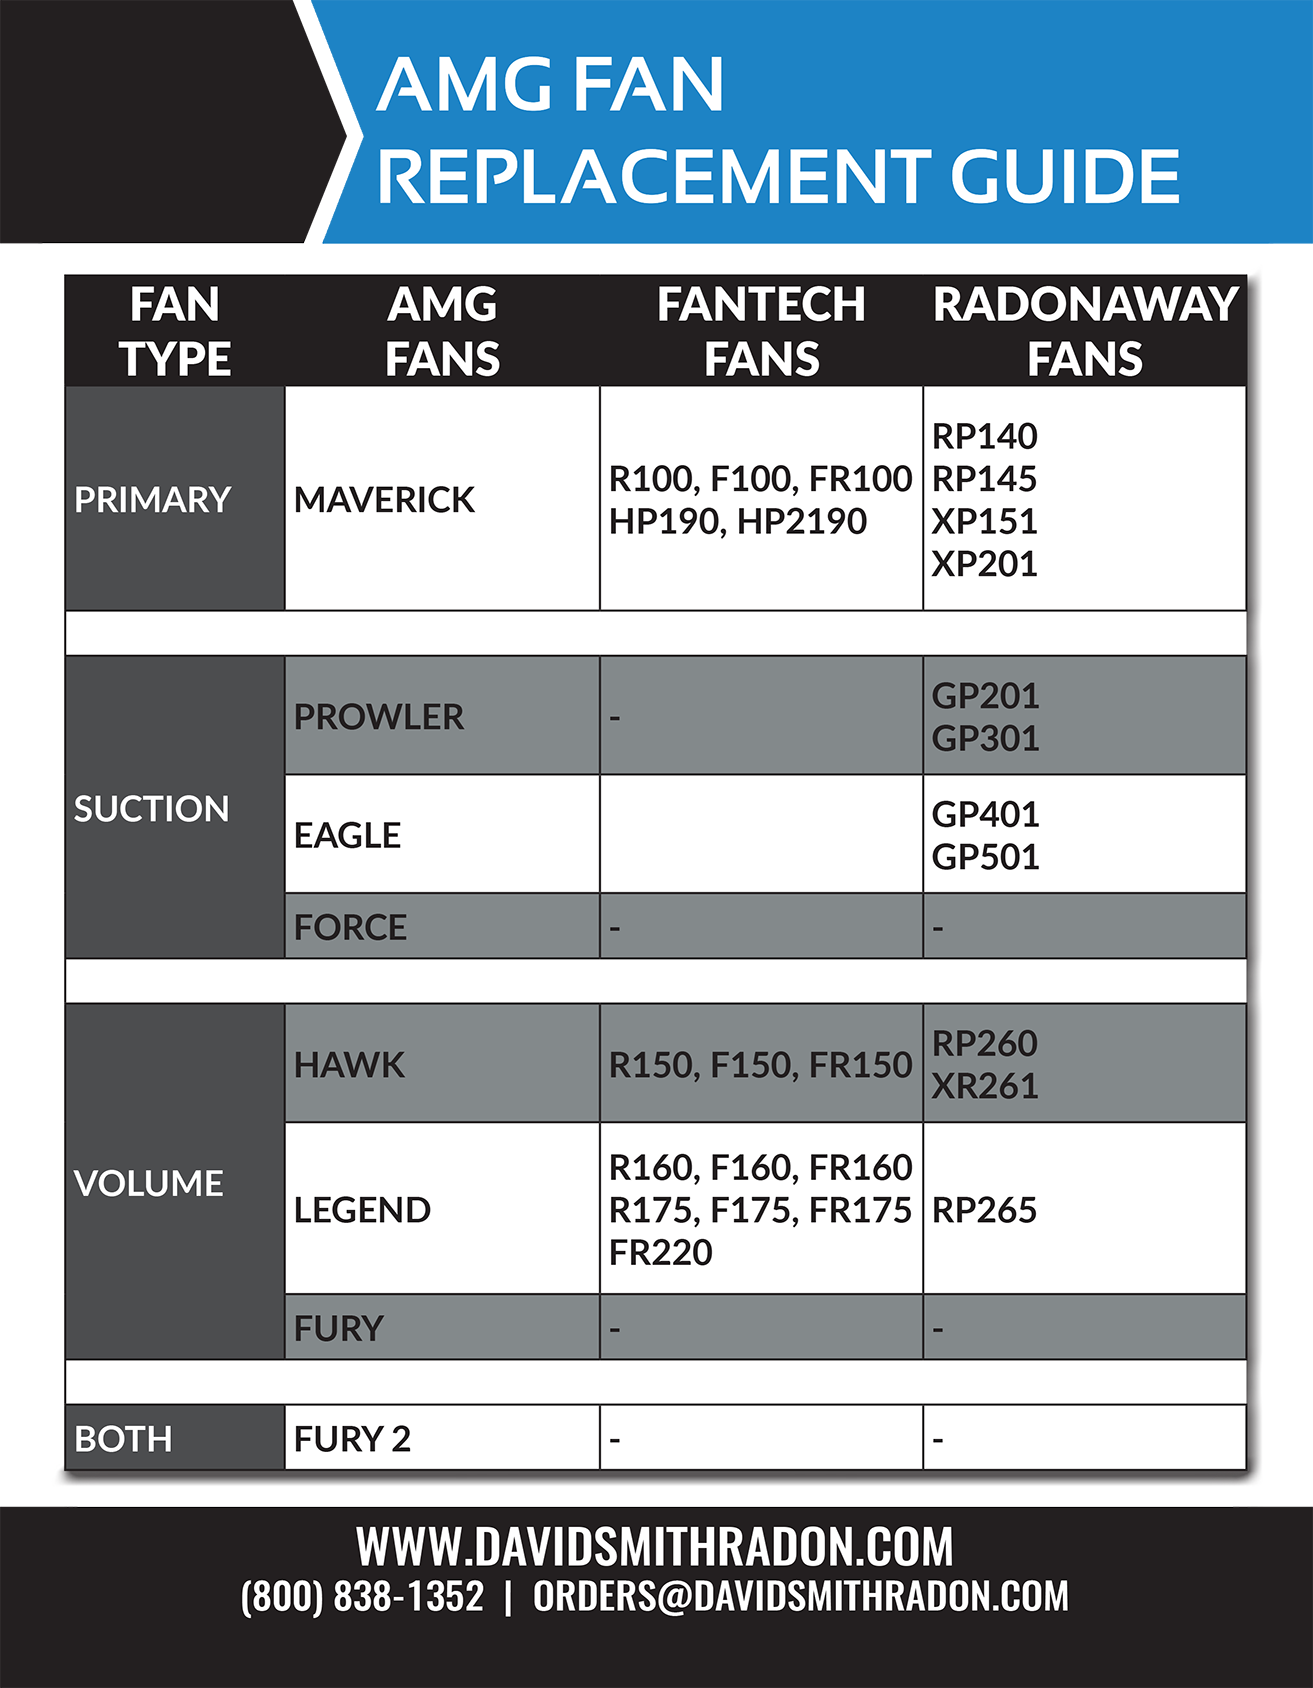 Festa Fans AMG Fan Replacement Guide